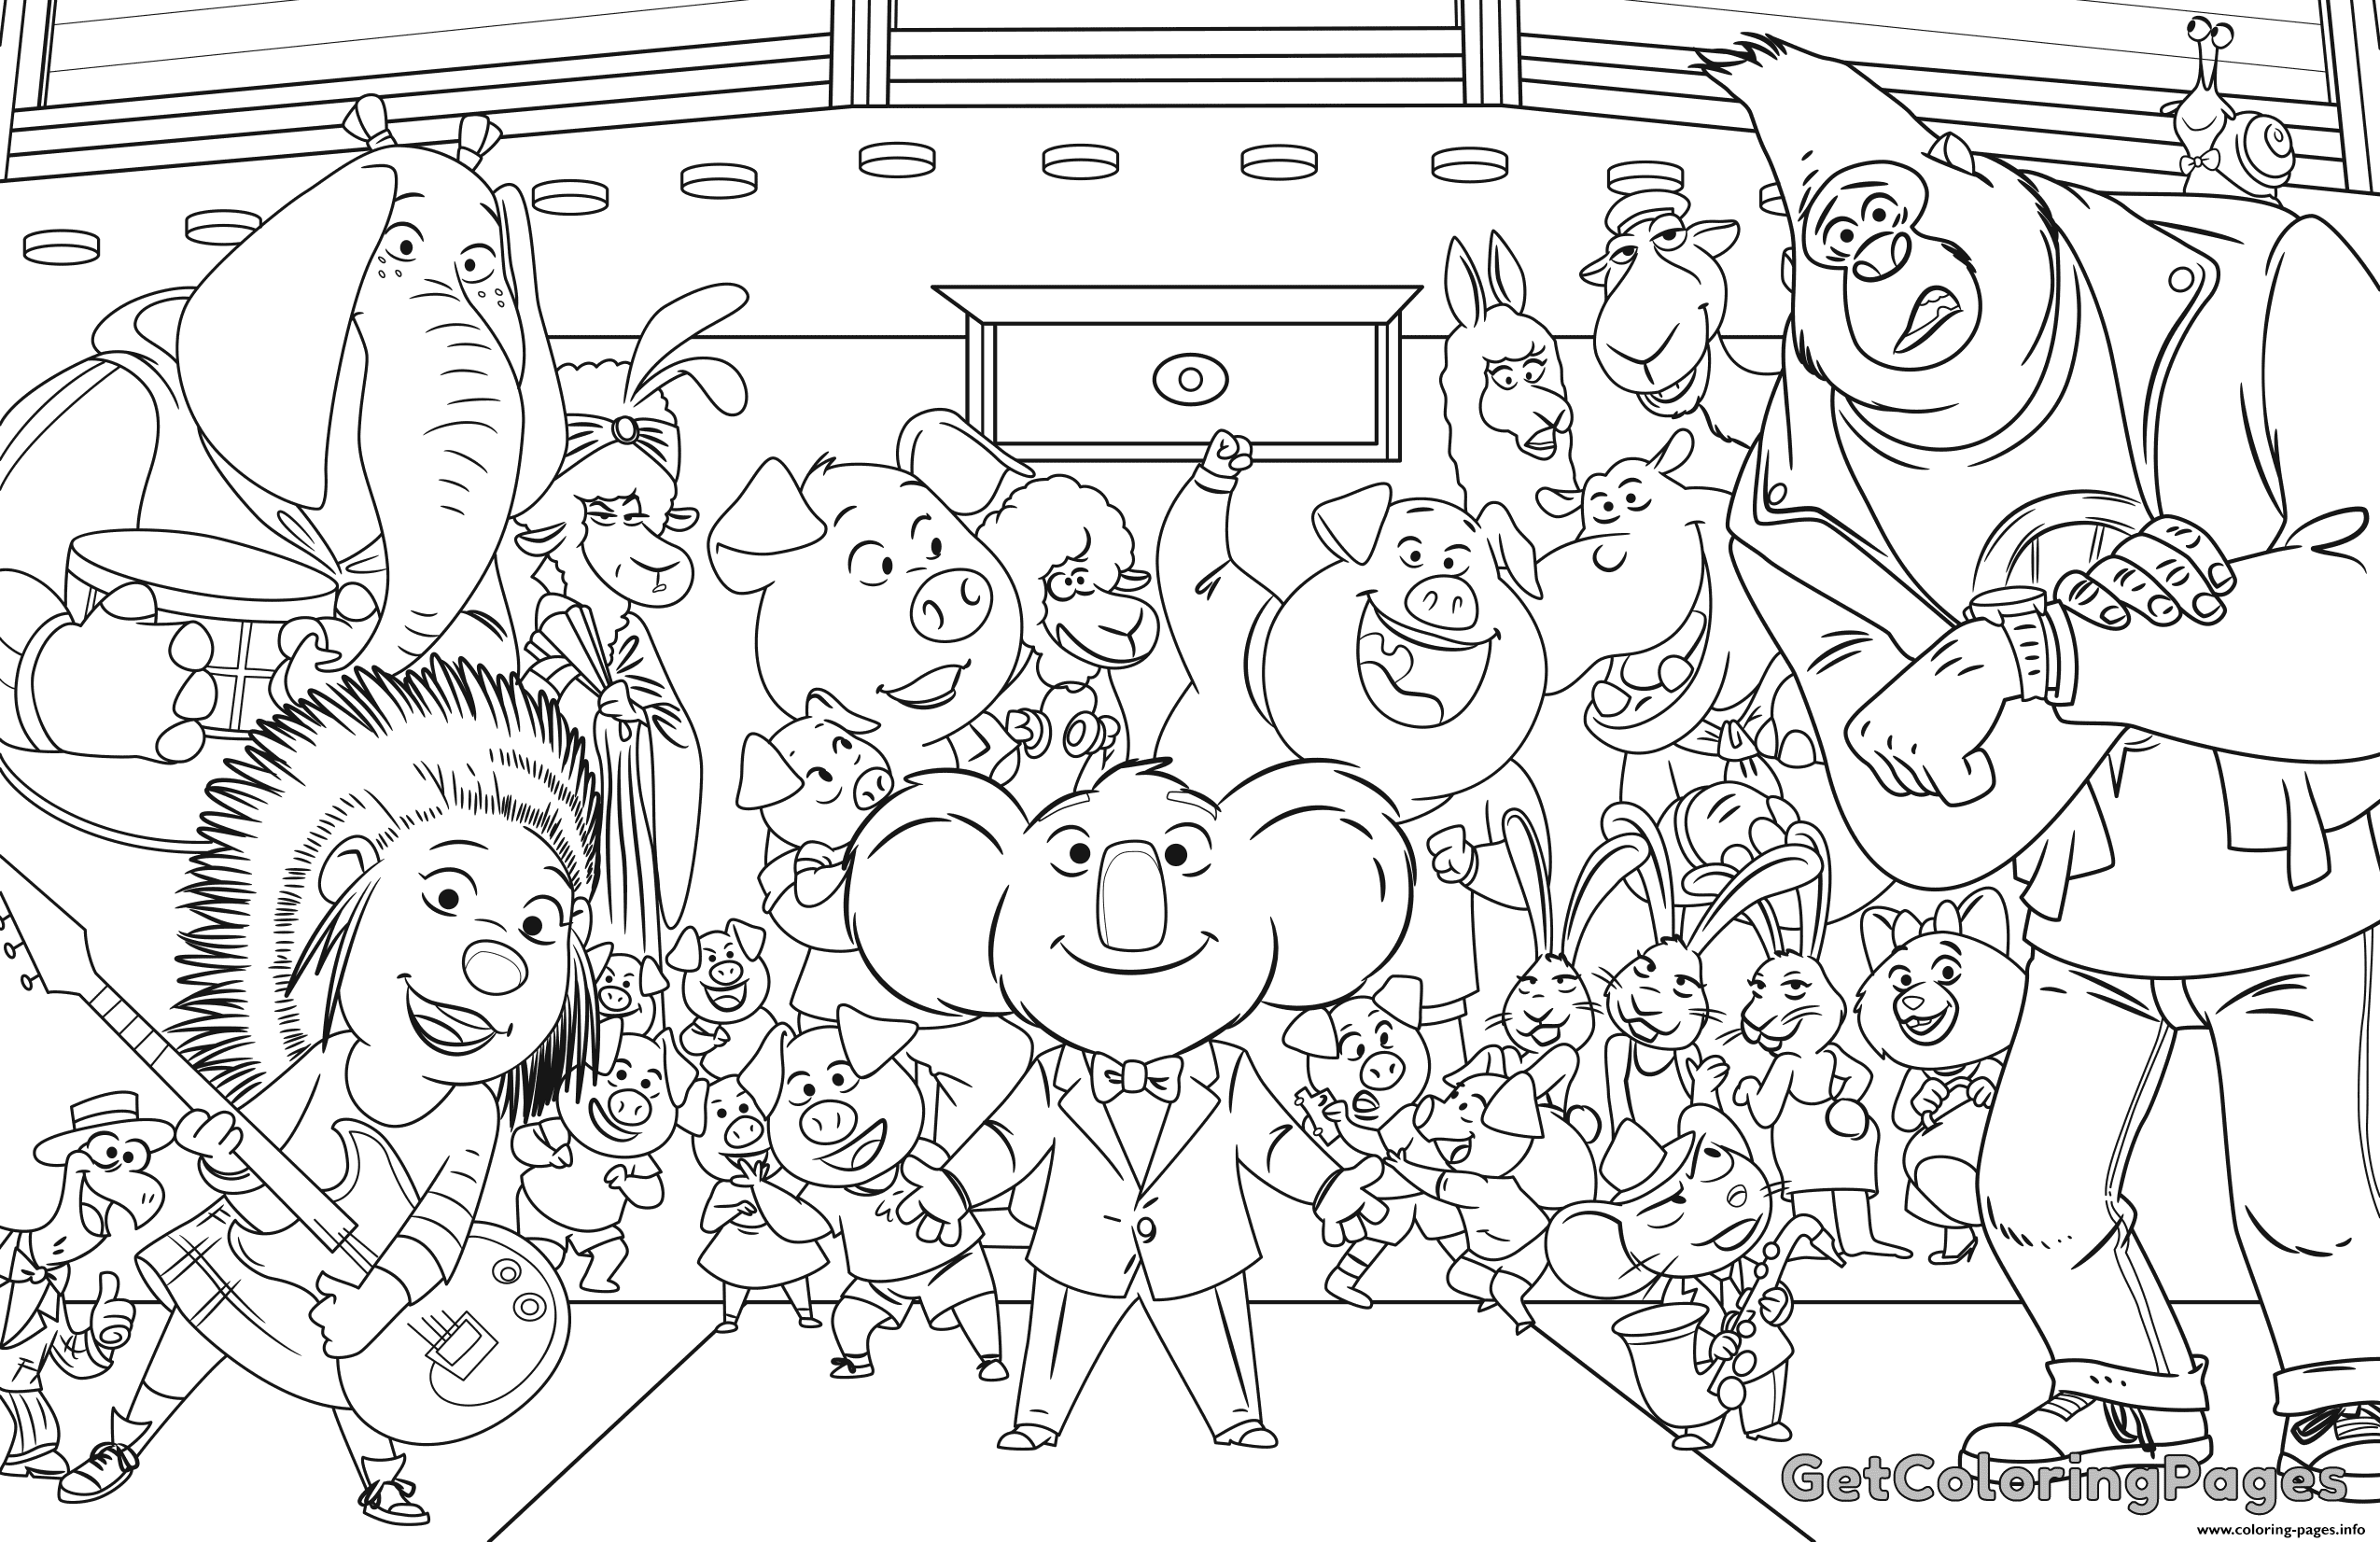 Print Sing Colouring Page Coloring Pages Minion Coloring Pages Cartoon Coloring Pages Lego Movie Coloring Pages